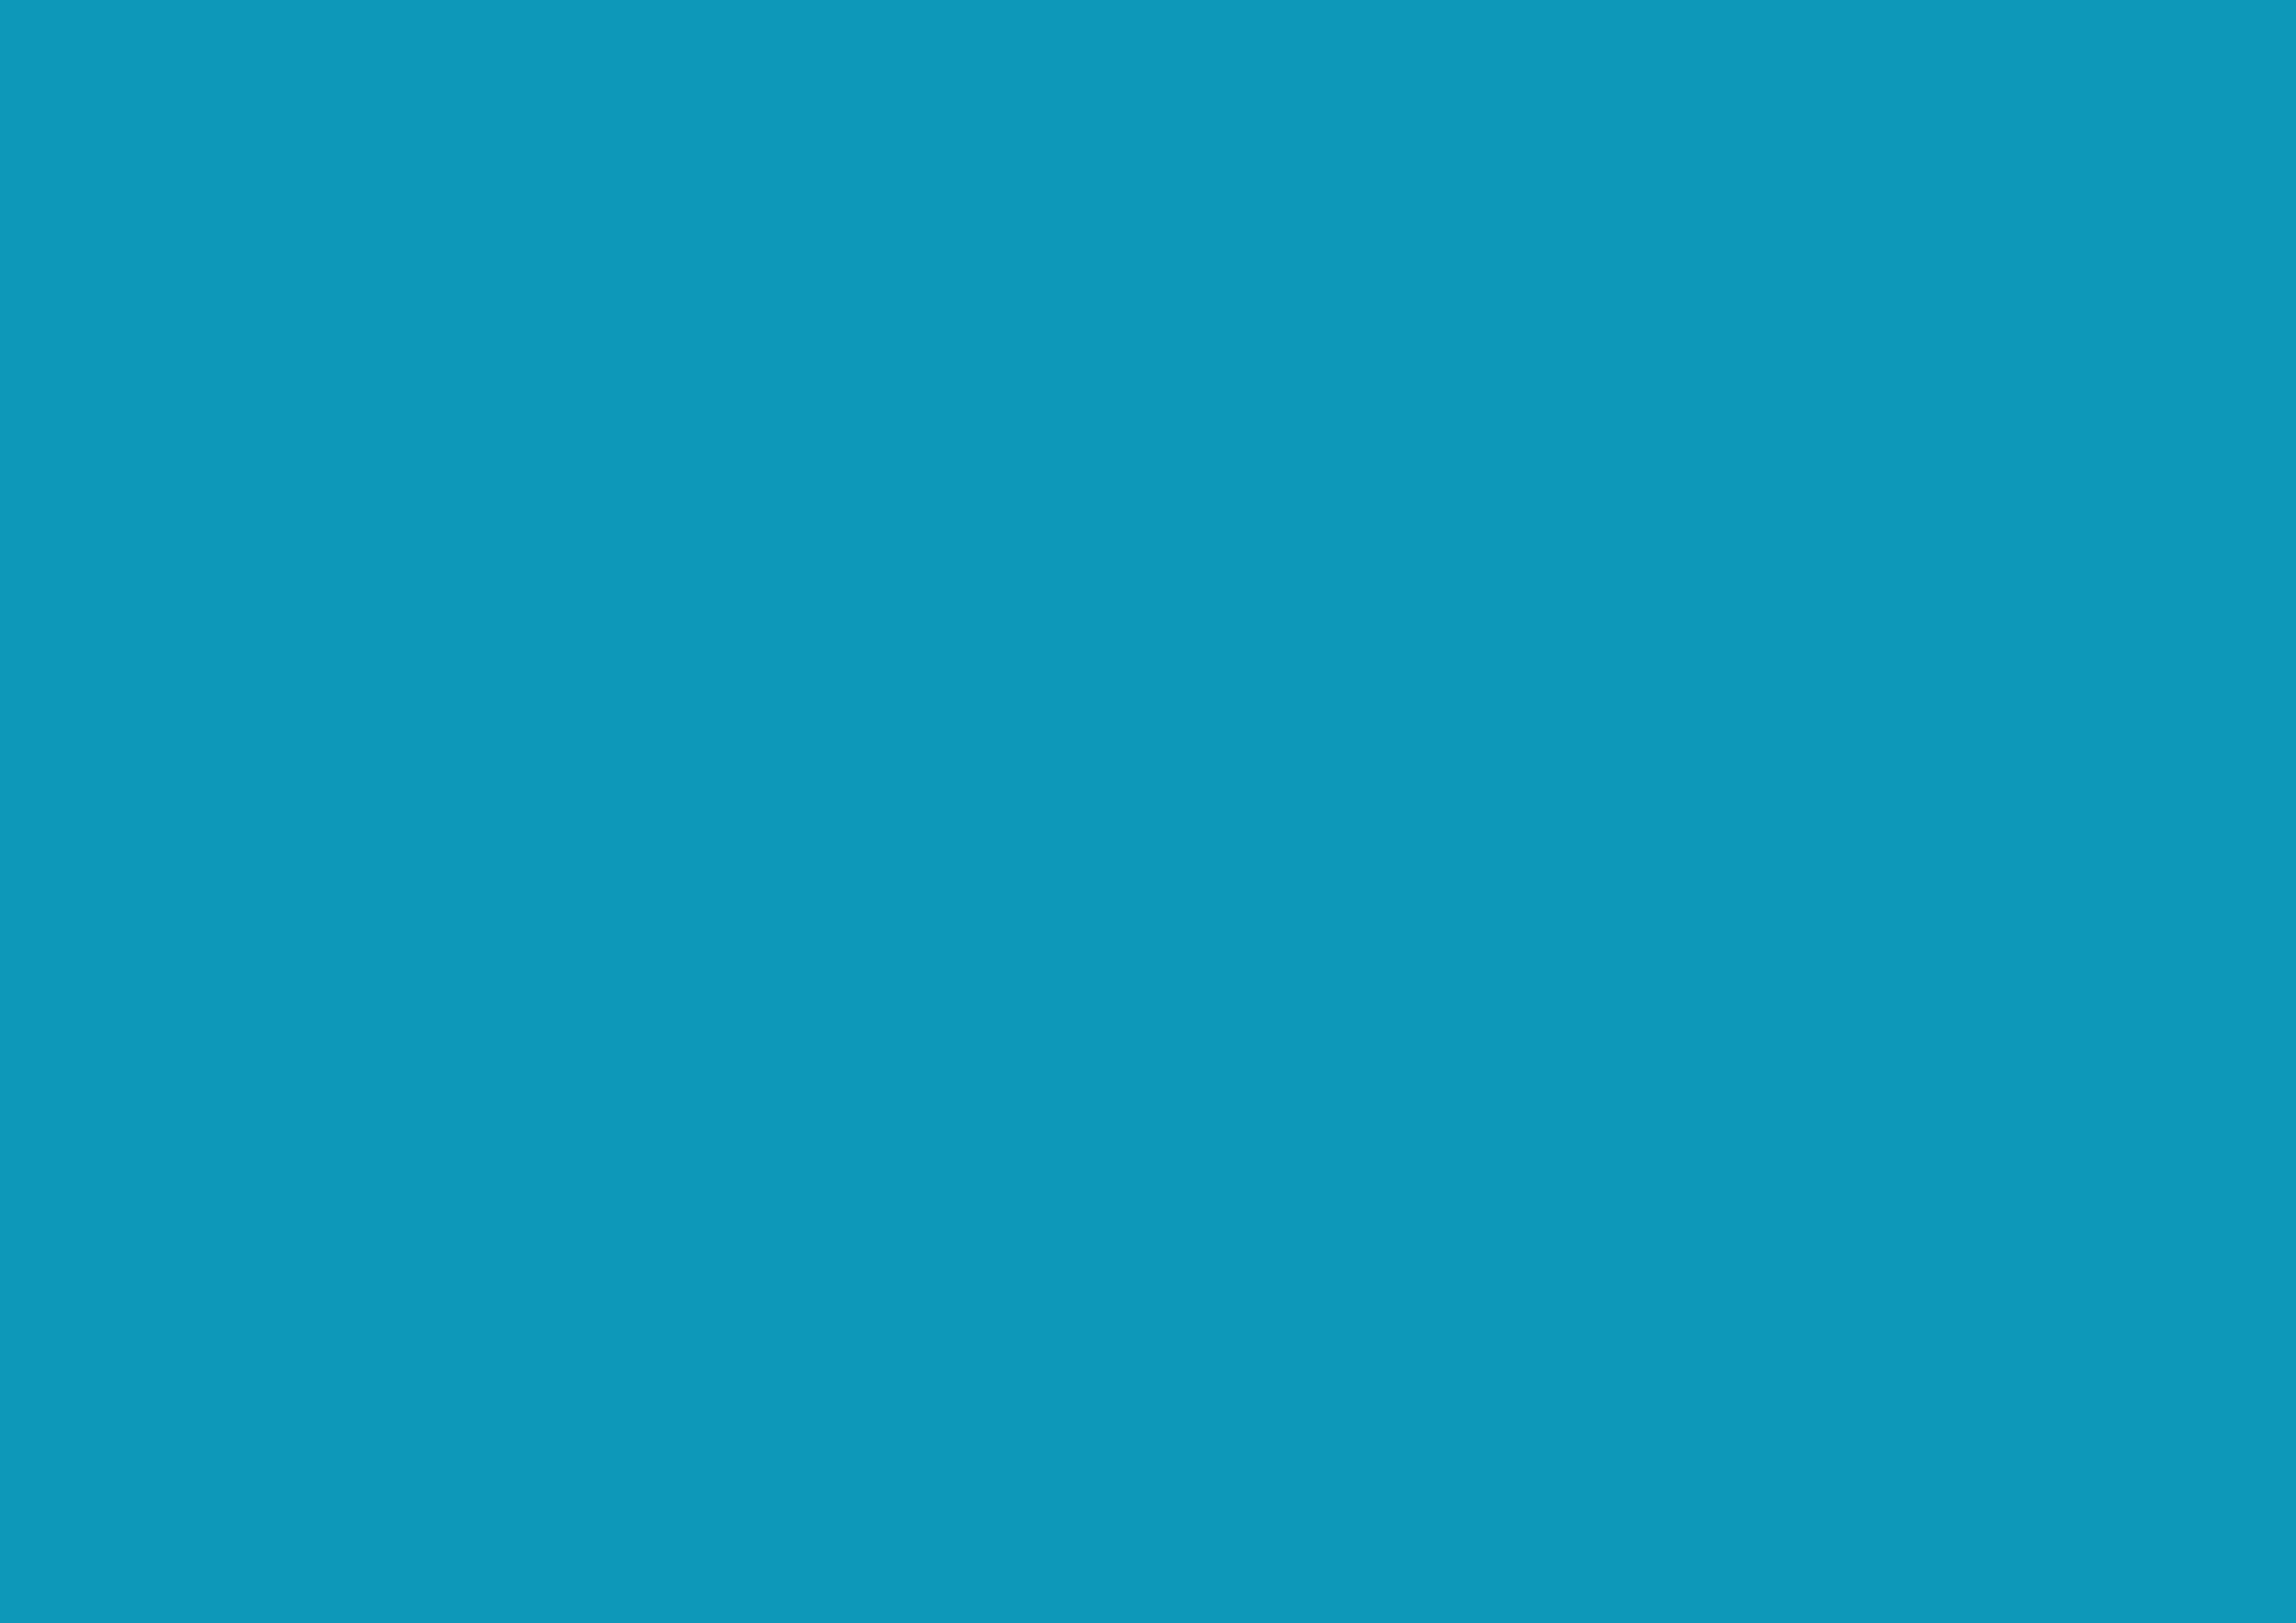 3508x2480 Blue-green Solid Color Background